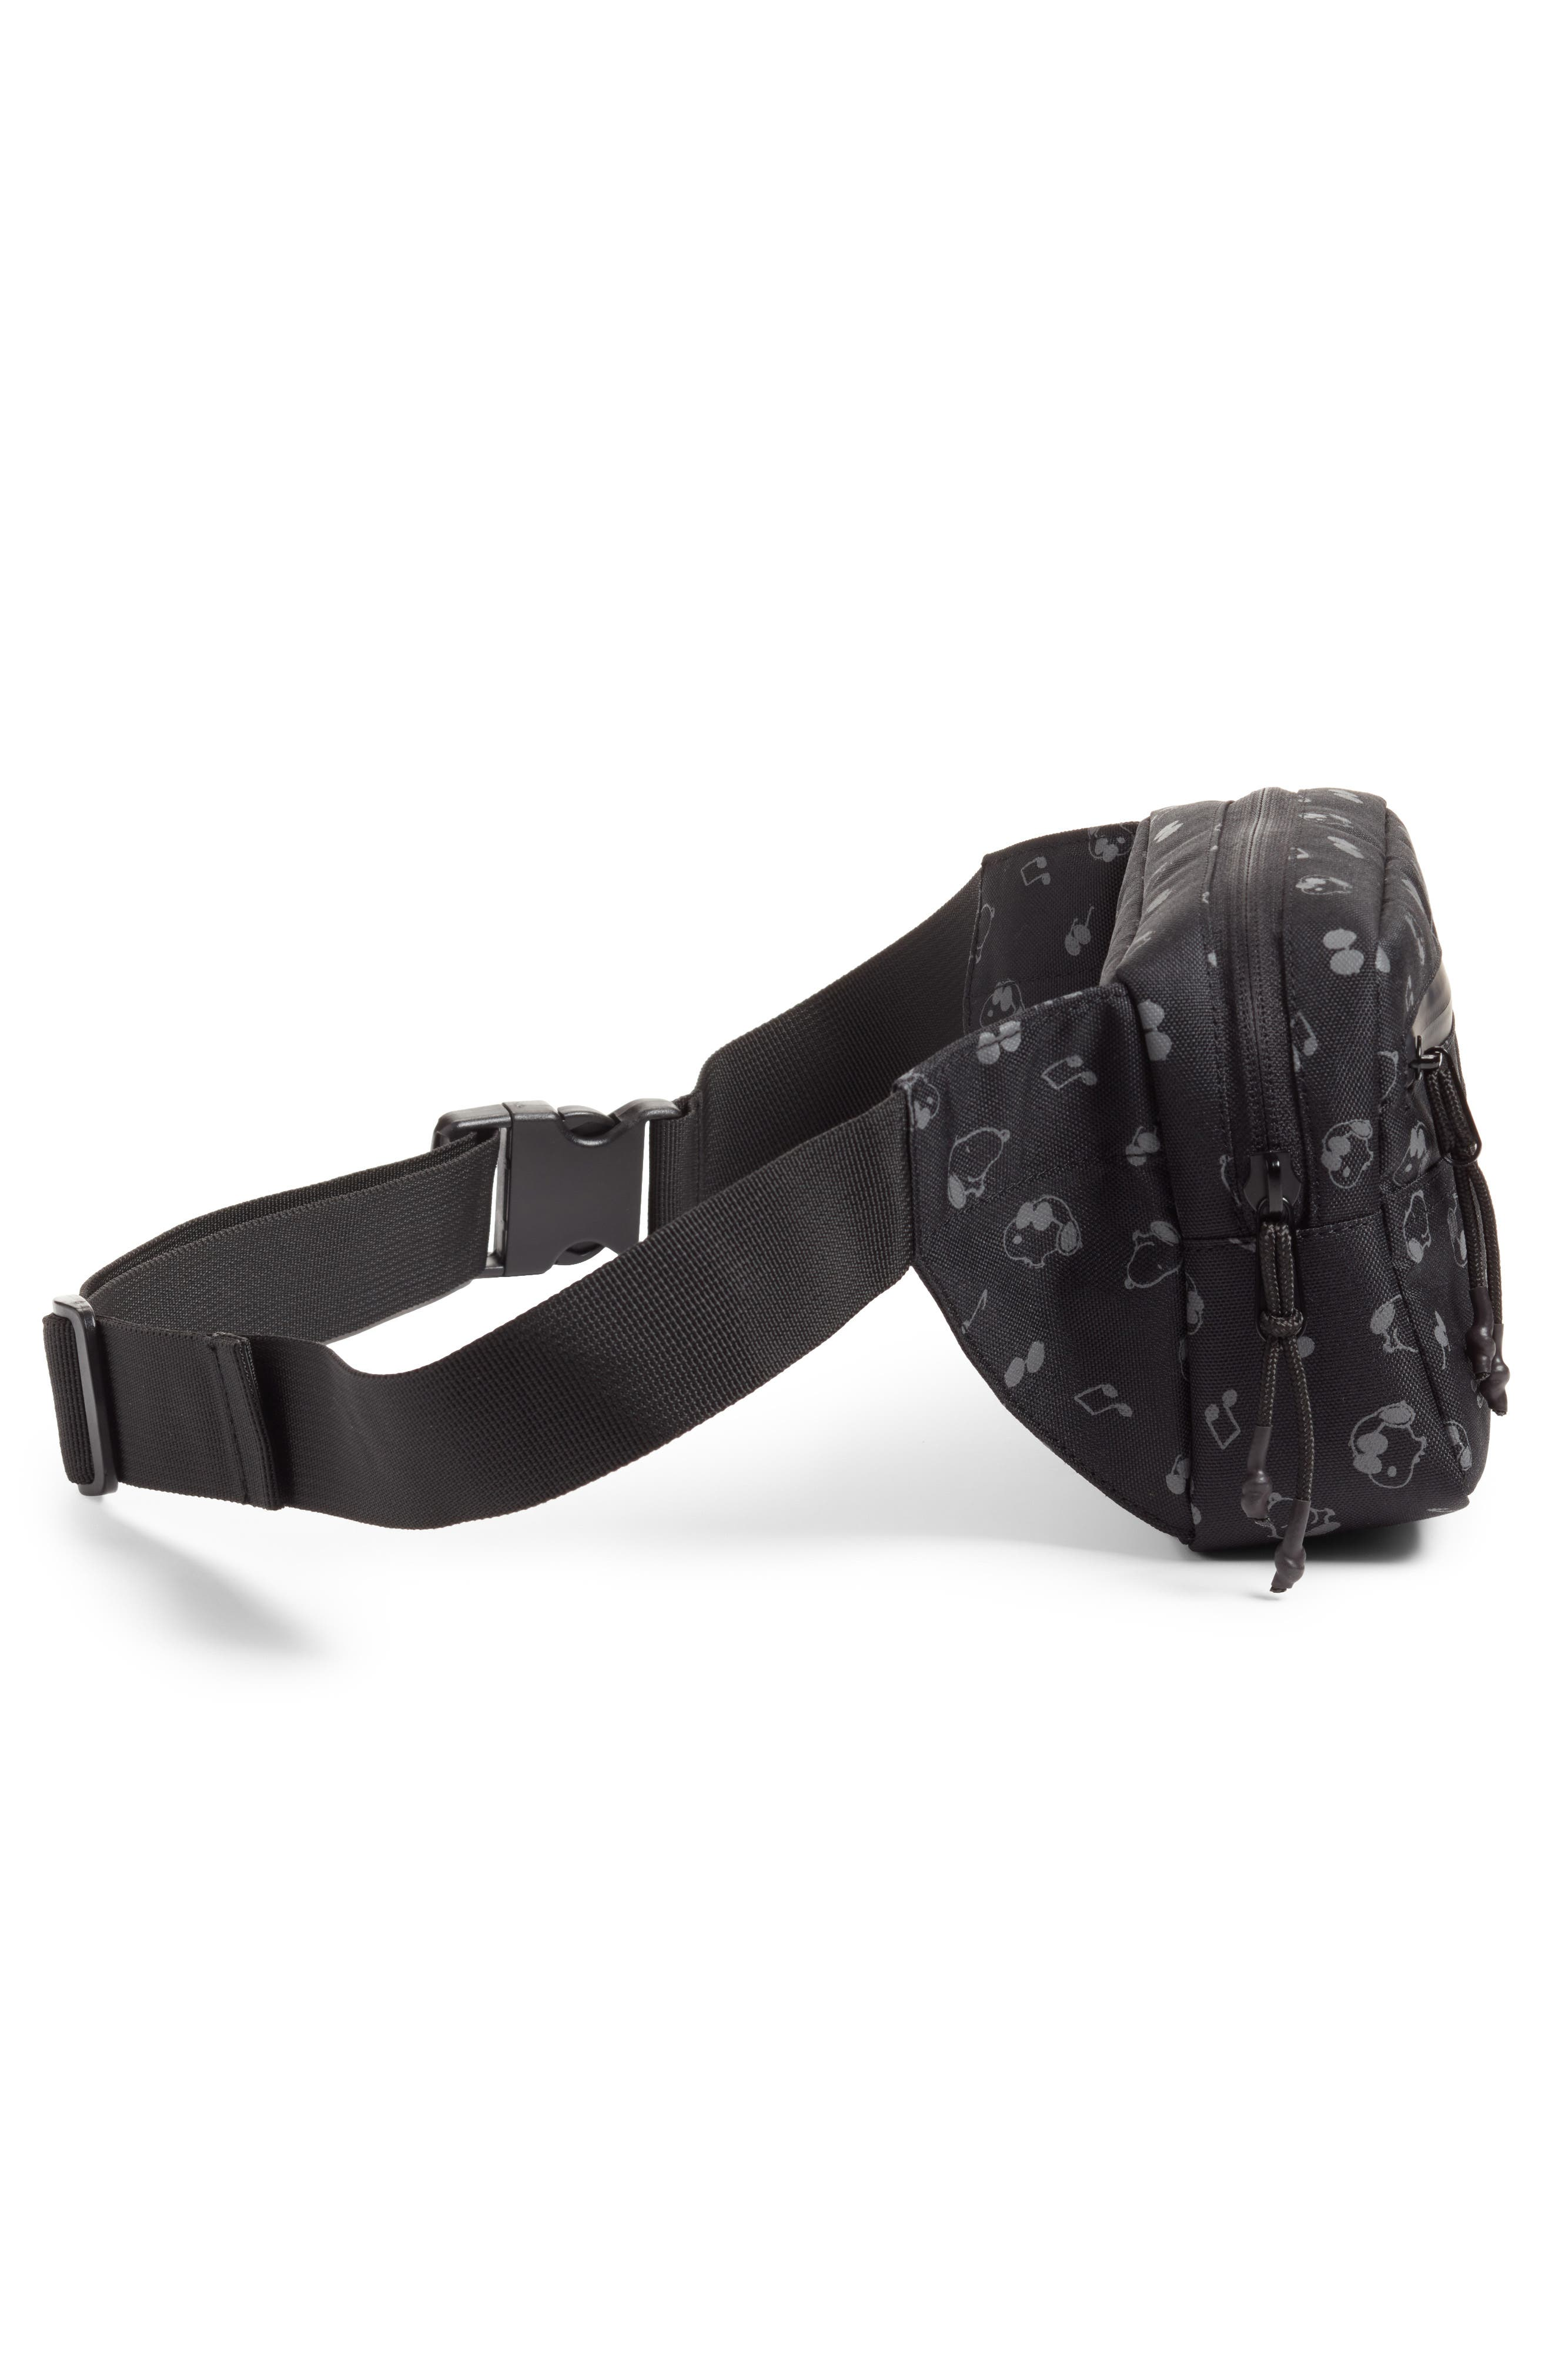 Alternate Image 4  - HEX x Peanuts Water Resistant Waist Pack (Limited Edition) (Nordstrom Exclusive)